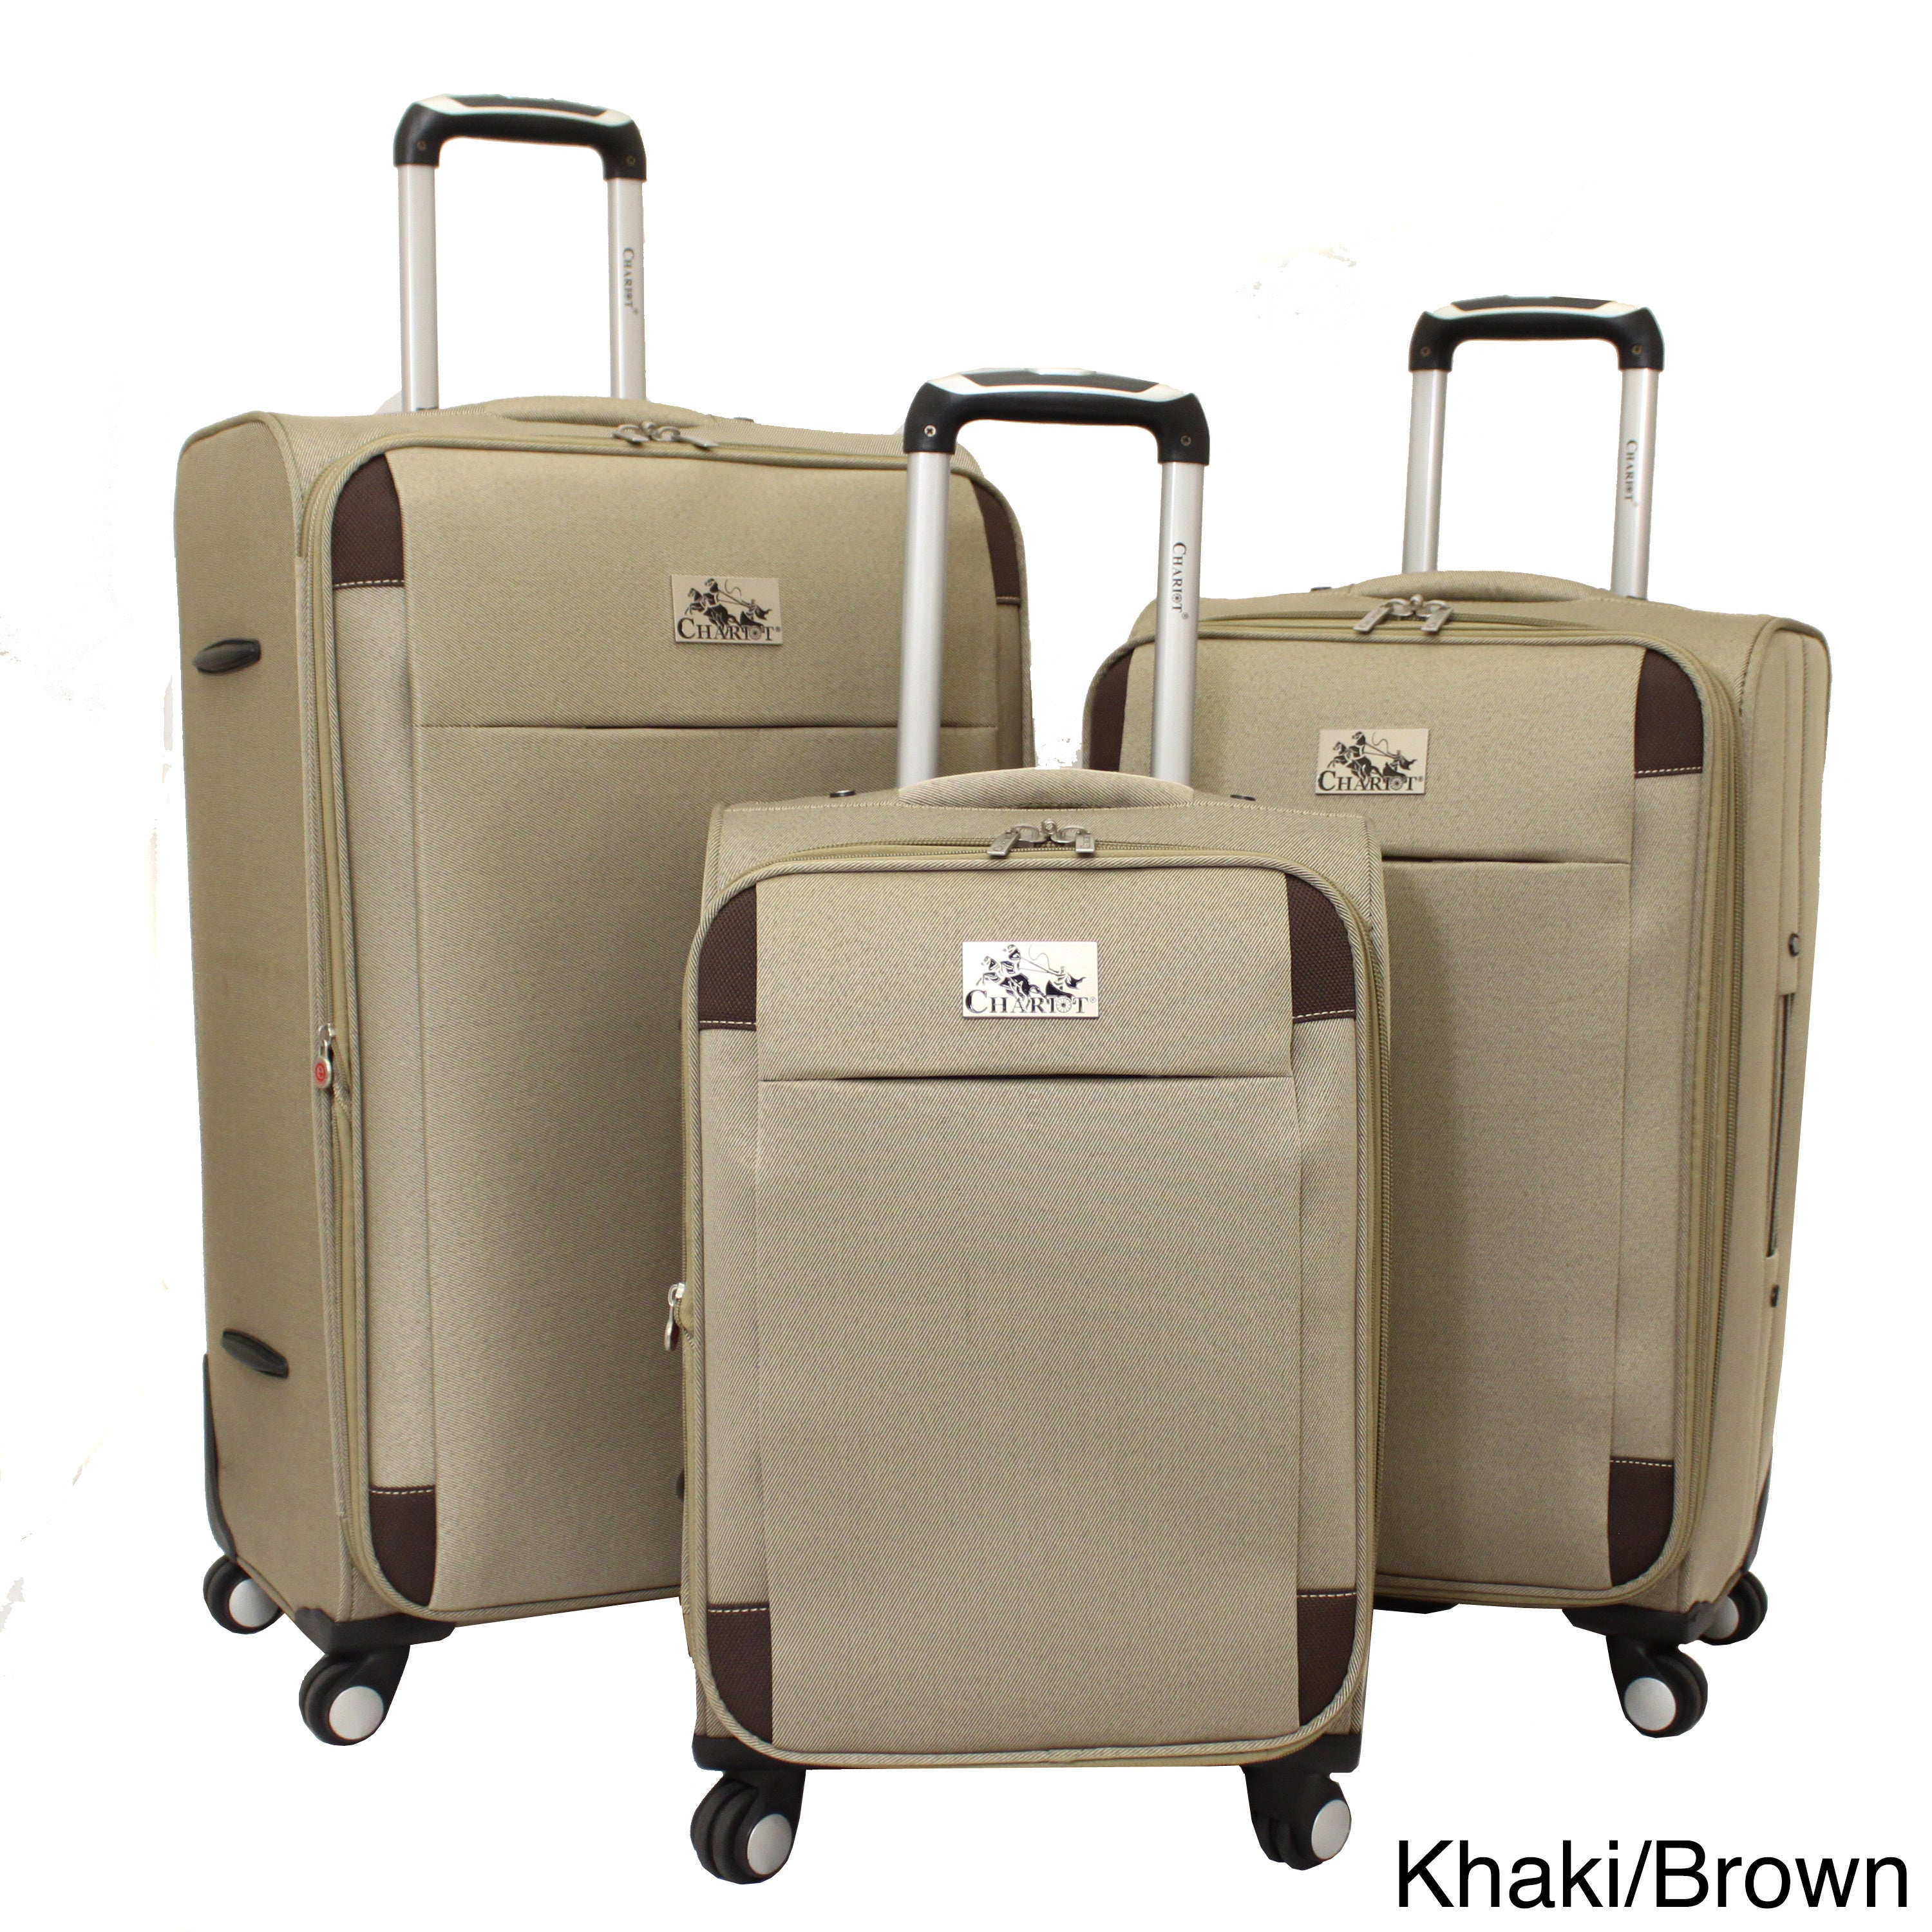 Chariot Travelware  Chariot Milan 3-piece Lightweight Spinner Luggage Set